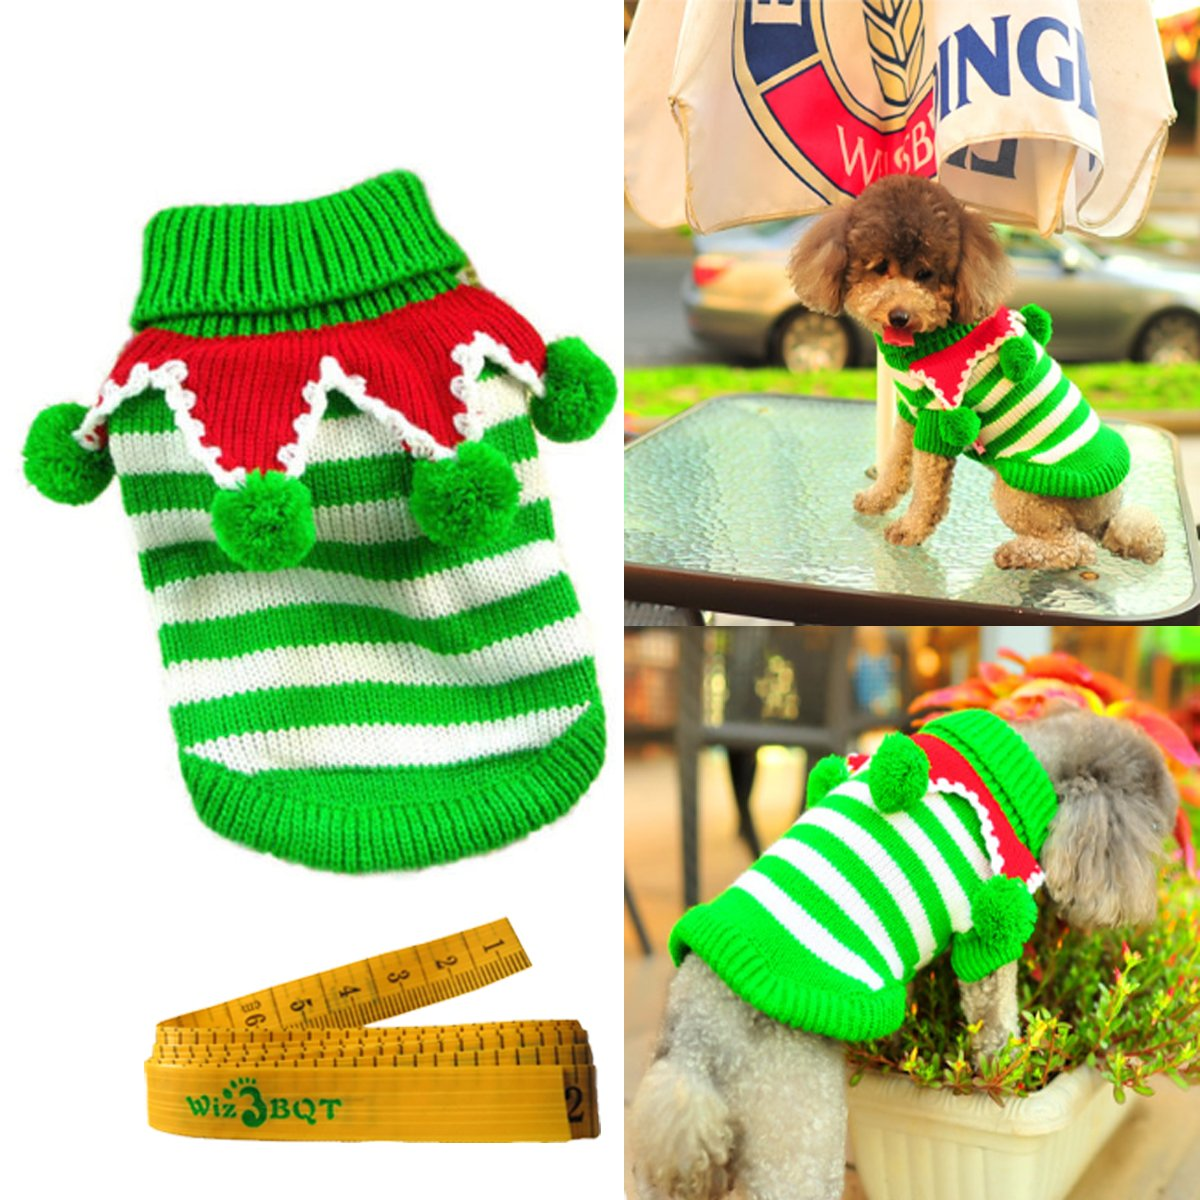 Wiz BBQT Christmas Dog Cat Pet Sweater Knitwear Outerwear with Collar and Balls for Cats & Dogs